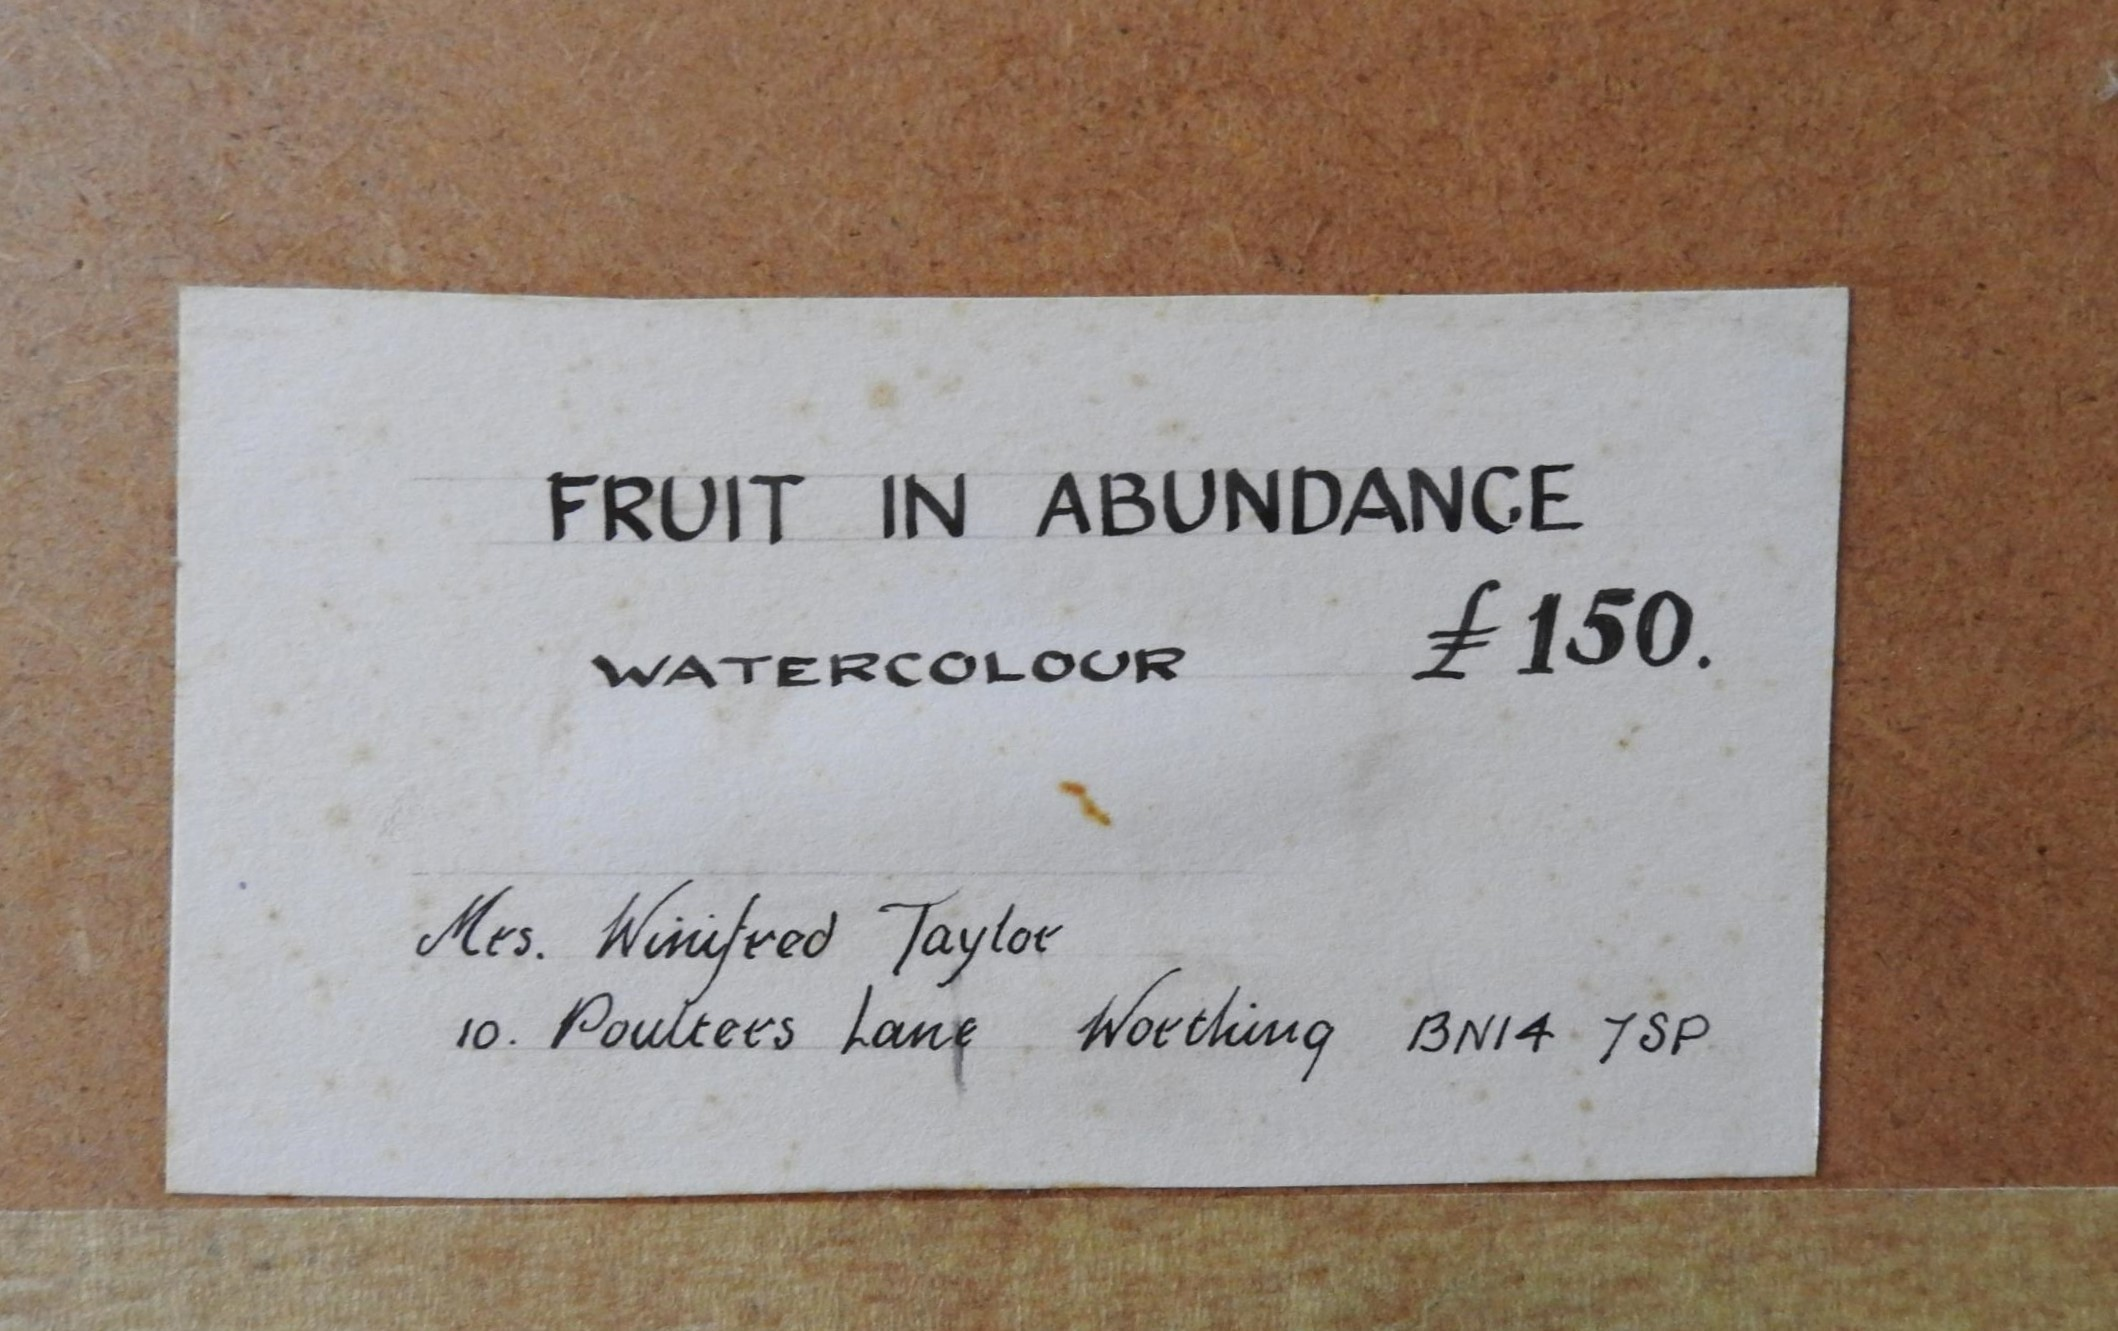 WATERCOLOUR ON PAPER 'FRUIT IN ABUNDANCE', WINIFRED TAYLOR AND LAKE SCENE WATER COLOUR, the Winifred - Image 3 of 3